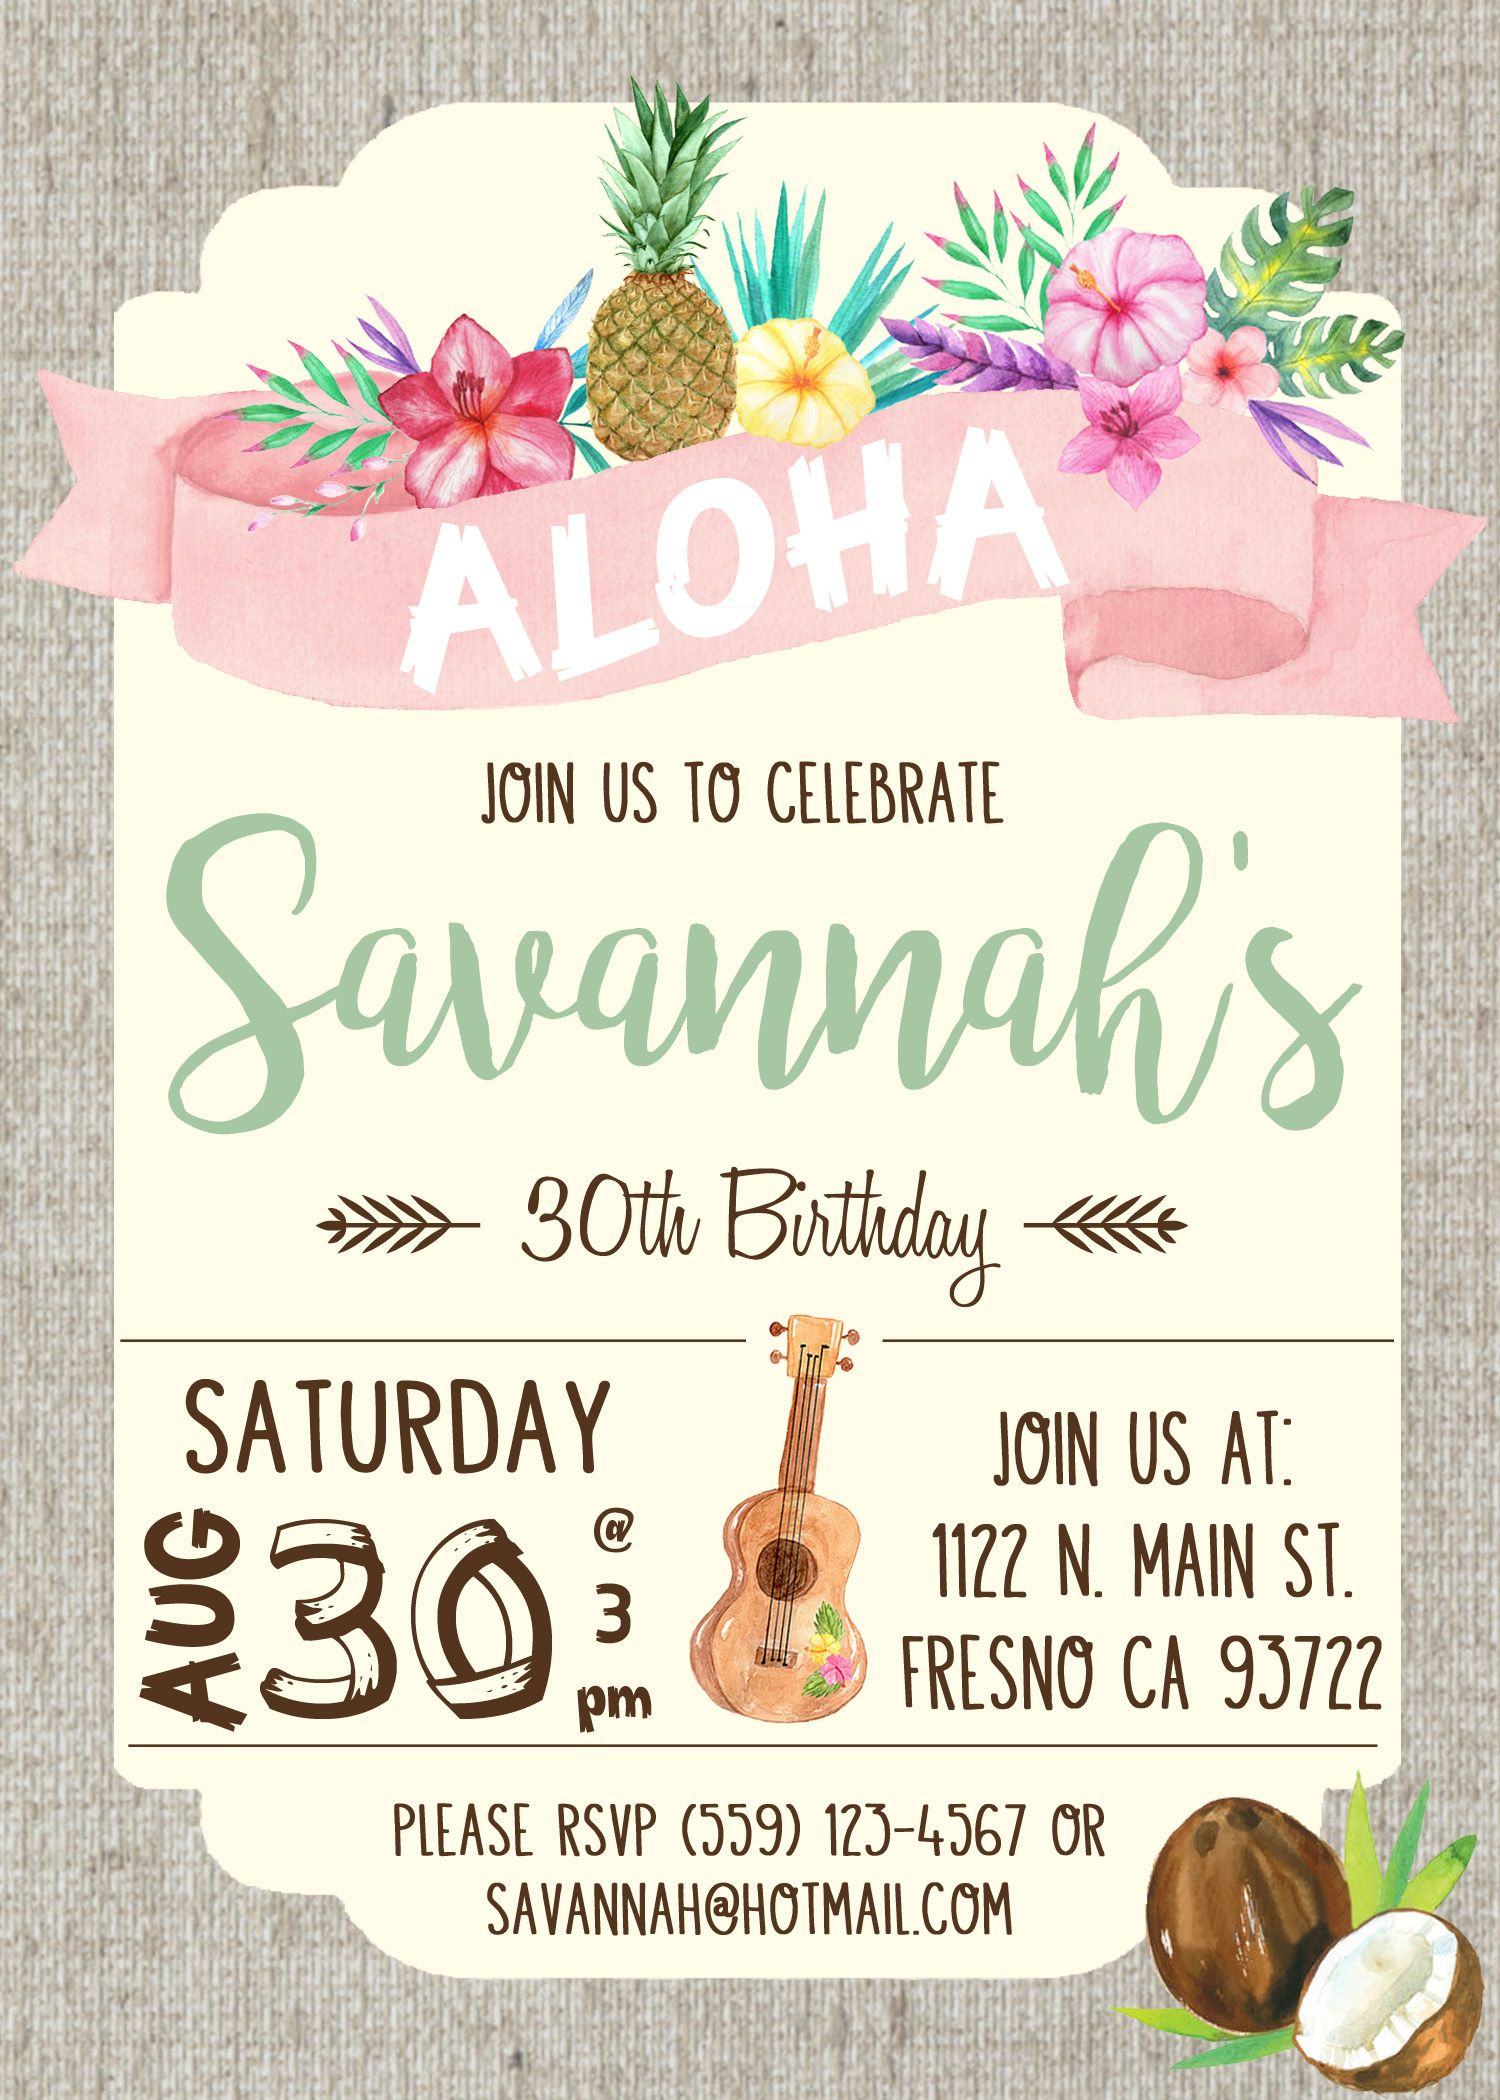 Hawaiian luau birthday party invitation invite watercolor flowers hawaiian luau birthday party invitation invite watercolor flowers shabby chic ukulele pineapple coconut aloha stopboris Image collections